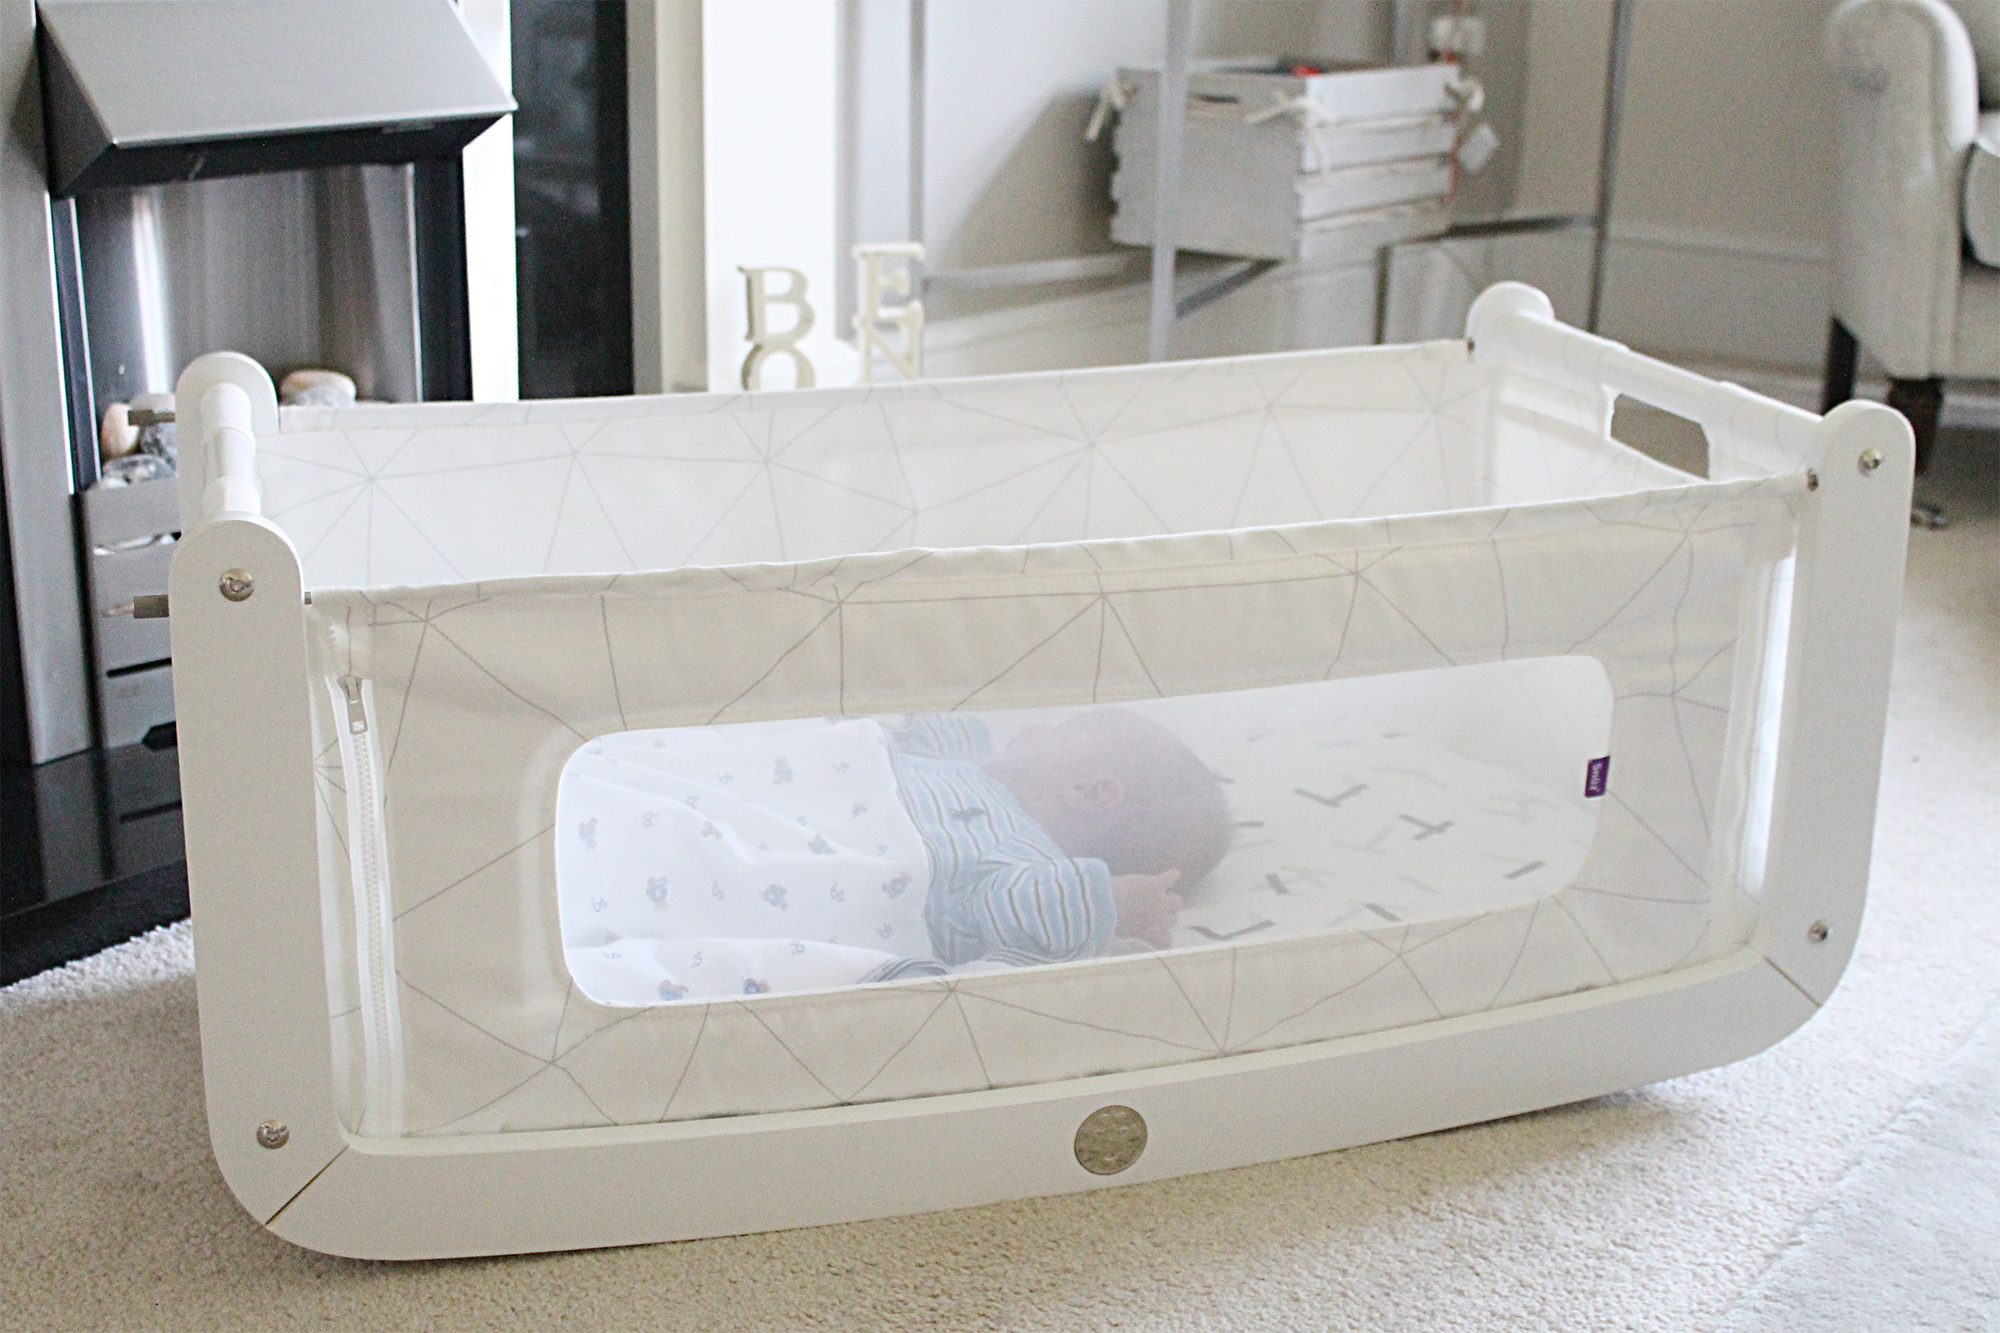 A white rocking bassinet on the floor of a living room